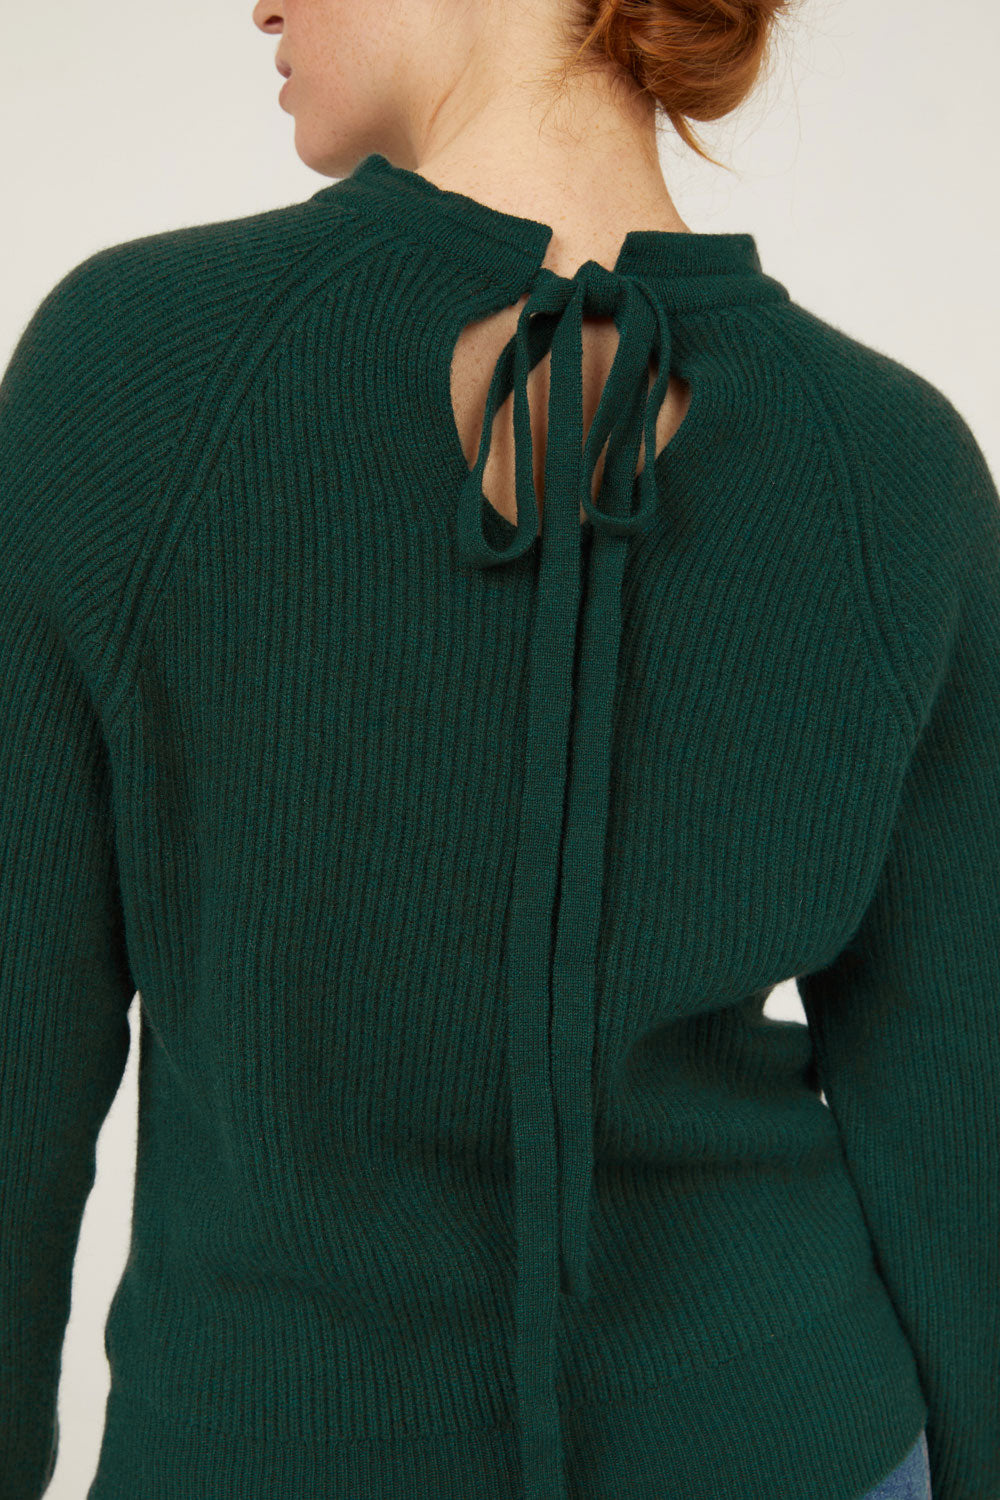 Evergreen cashmere mock neck pullover sweater with tie back bow detail